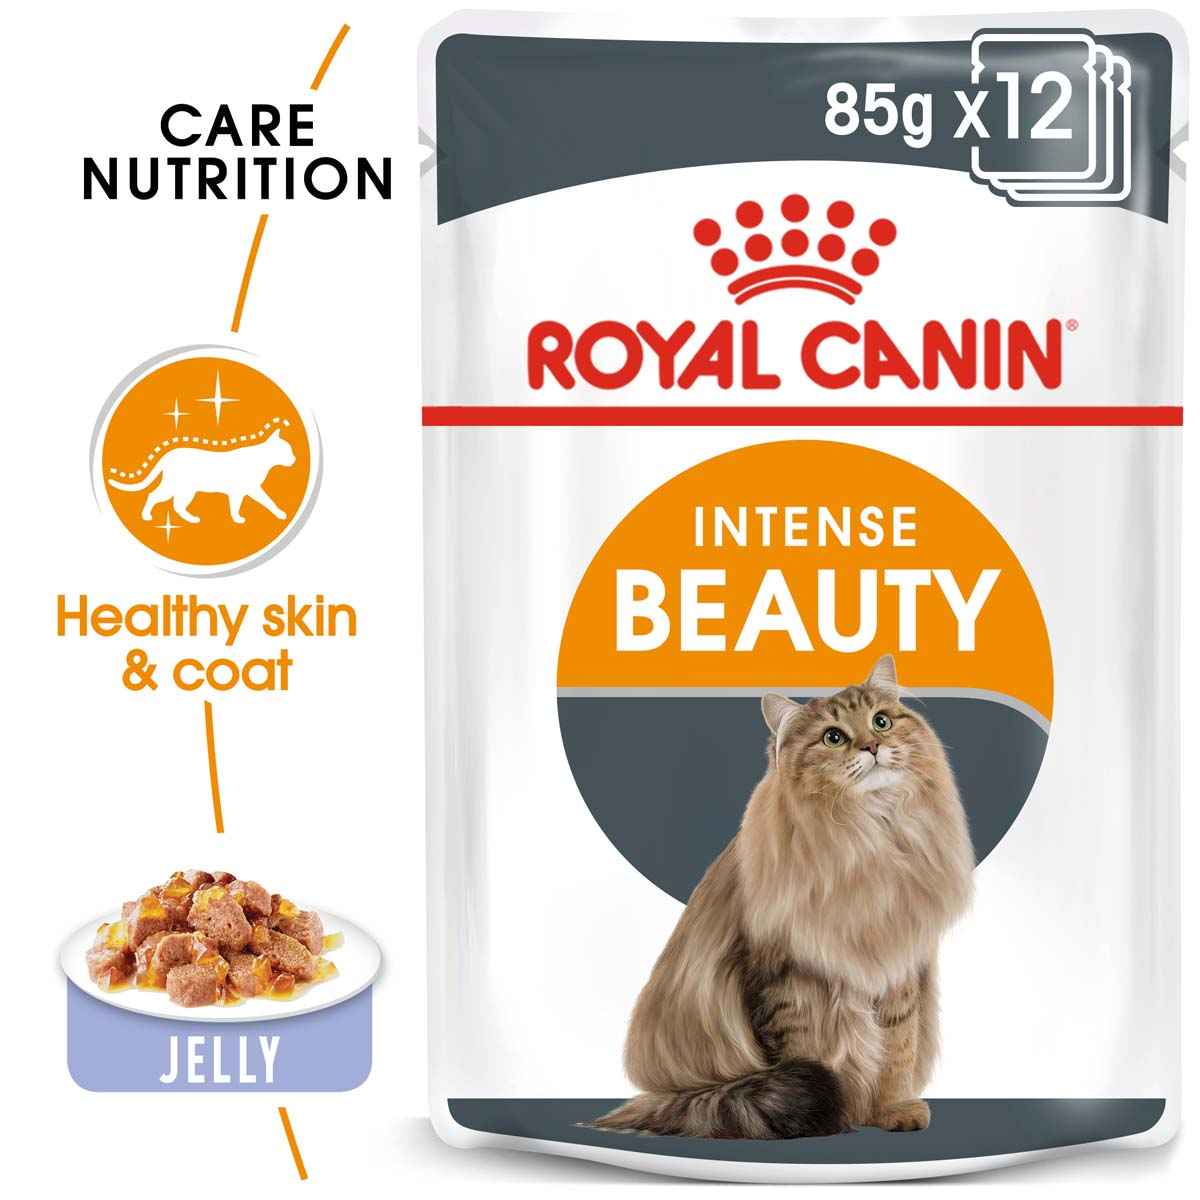 214144 1 royal canin intense beauty kat